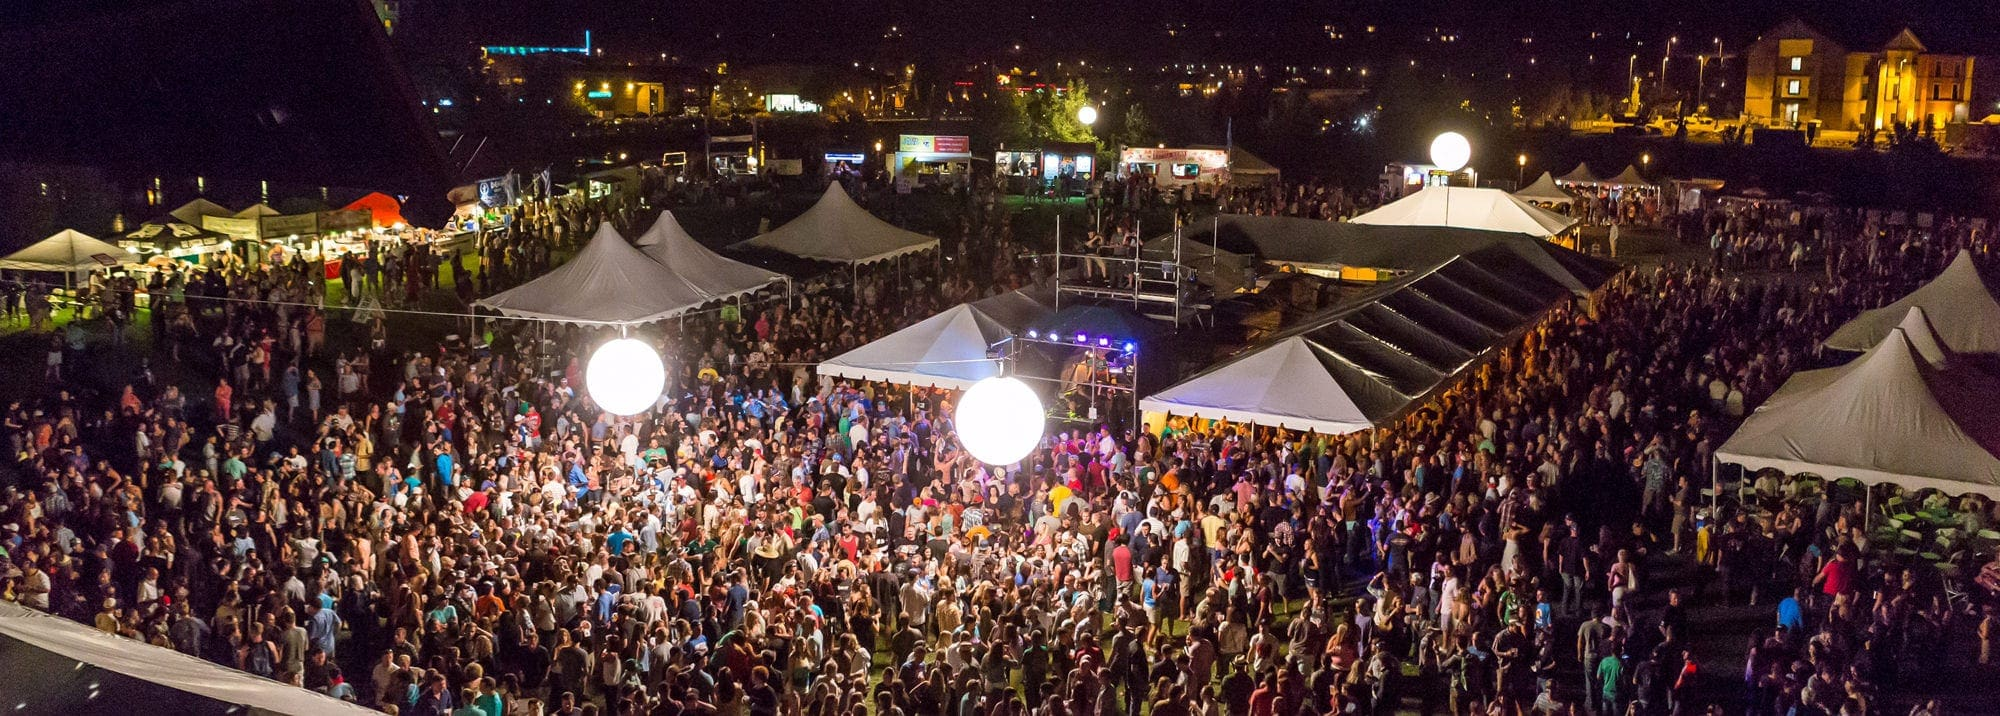 Aerial shot of Bend Brewfest at night